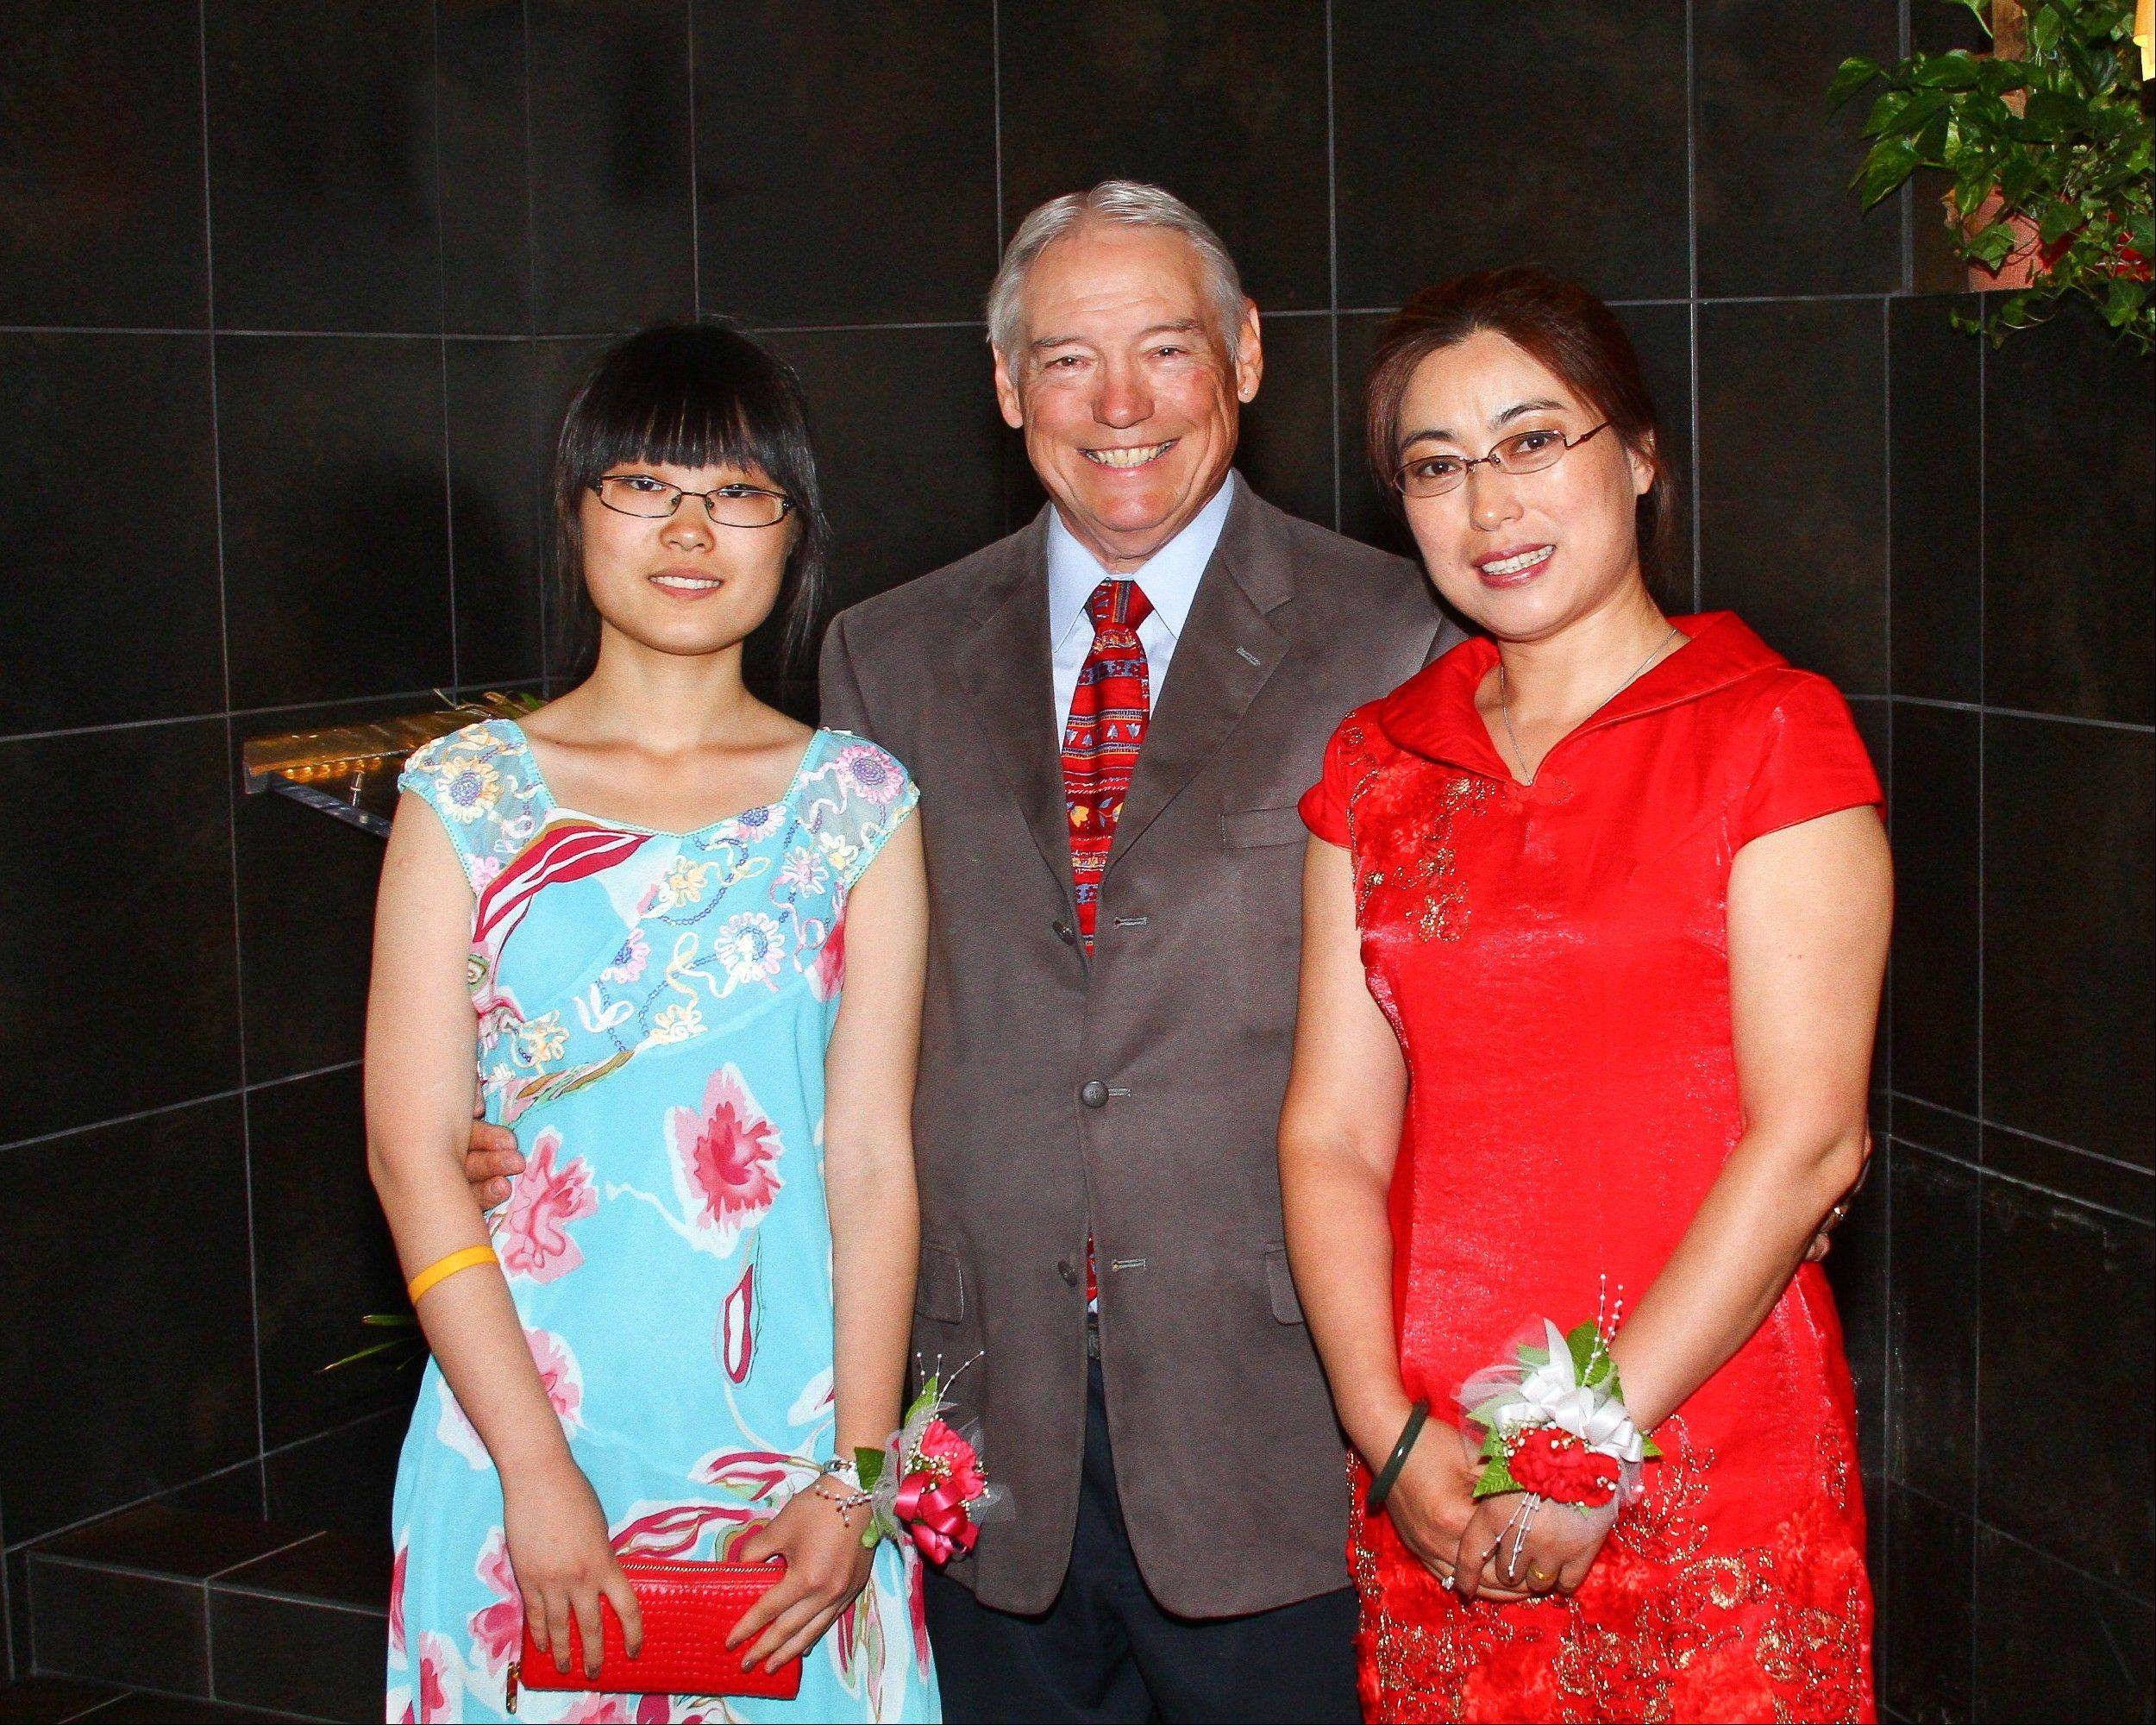 Ray Wright, professor at Roosevelt University, recently married Yane Zhang, at right. Her daughter, Jingwen Sun, also attended.